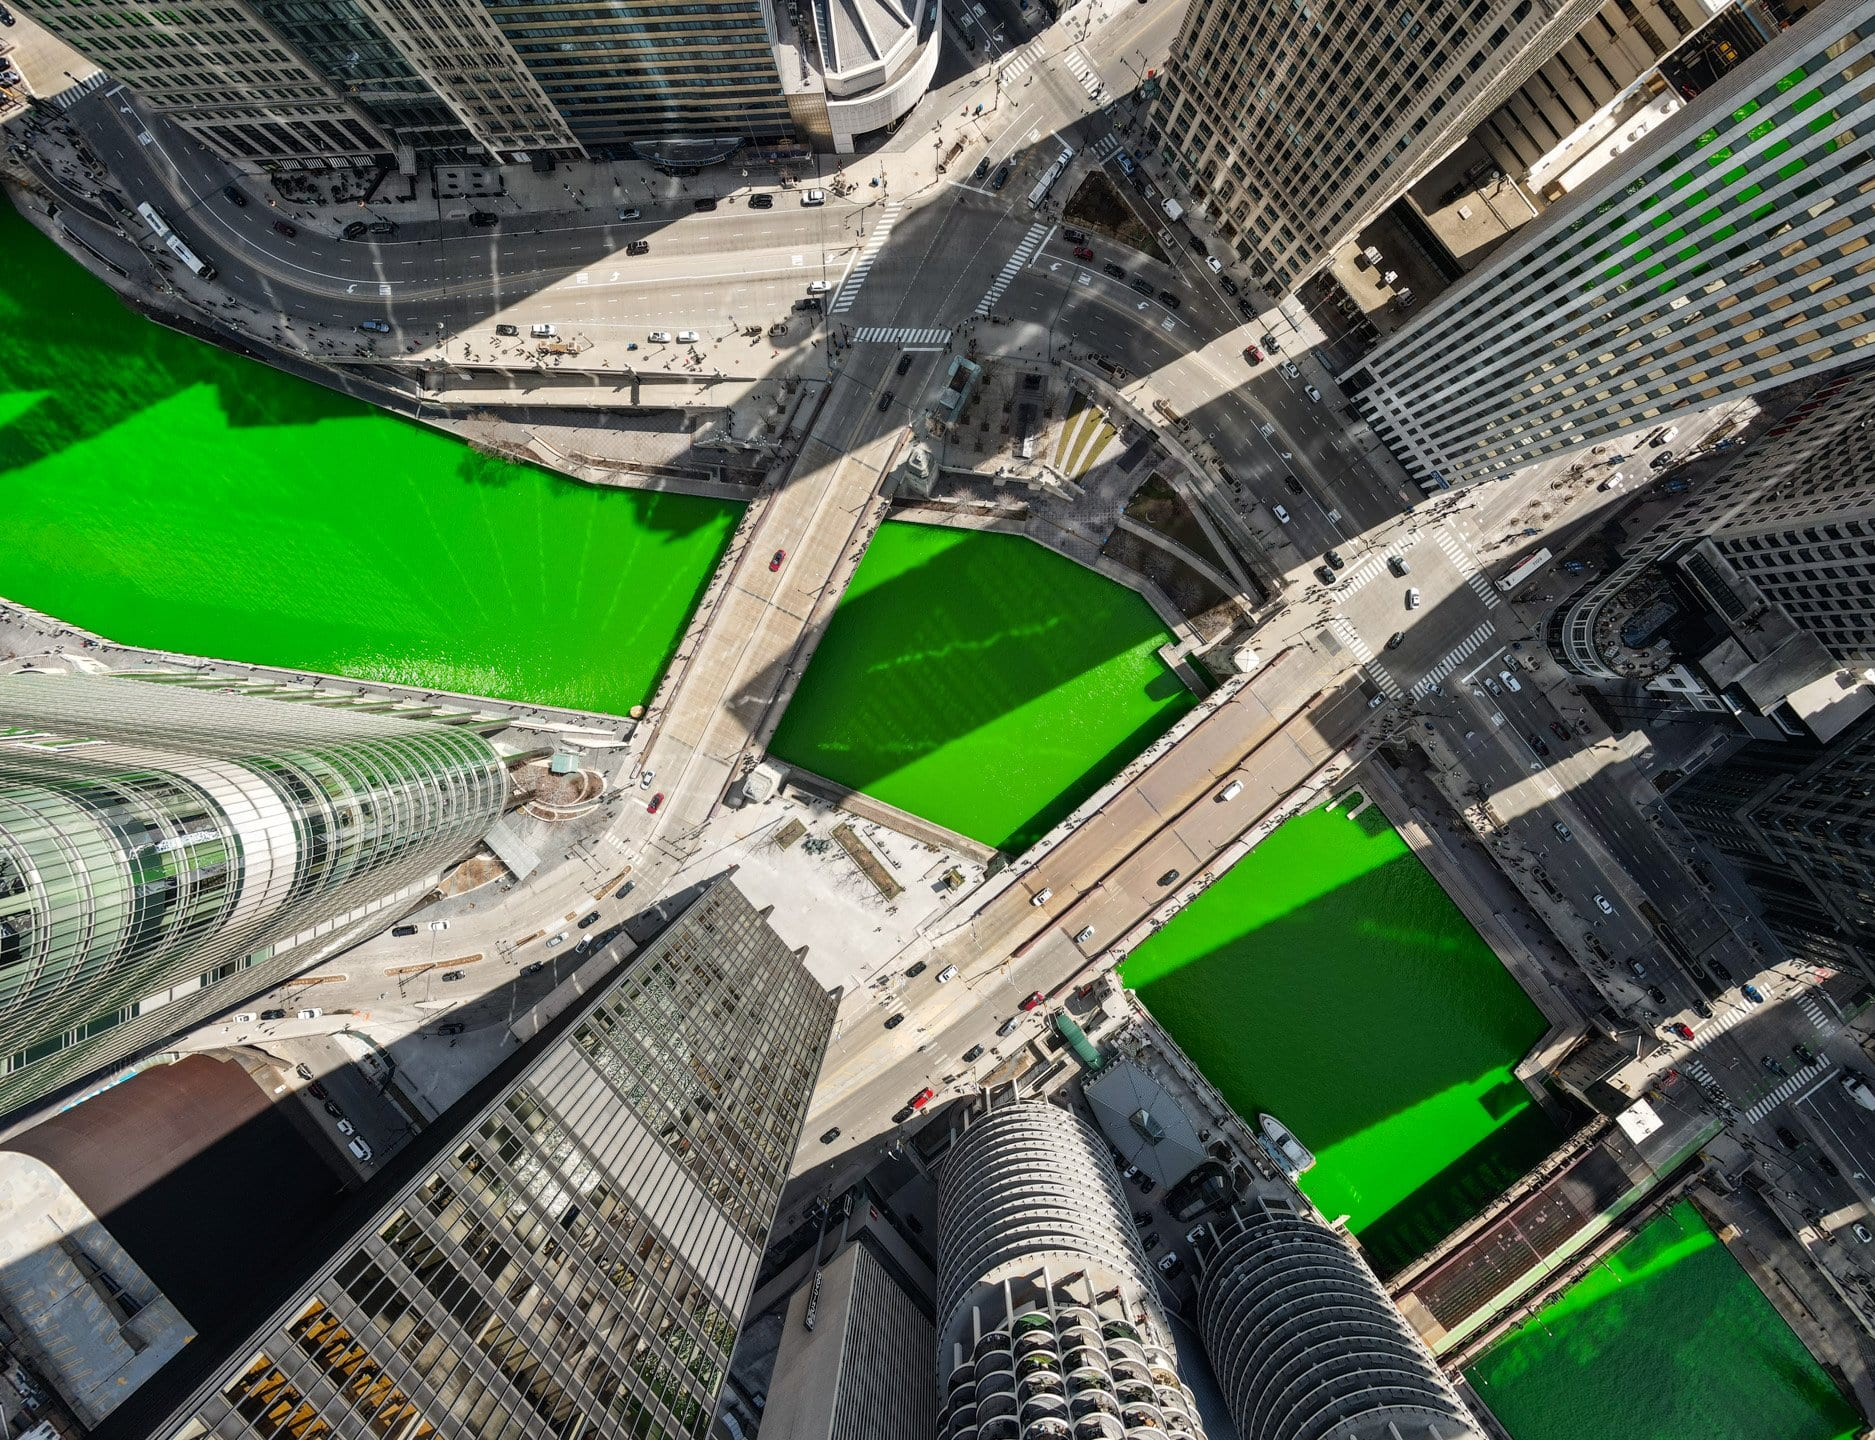 drone photography, dying of the chicago river, chicago river, st patricks day chicago, chicago skyline